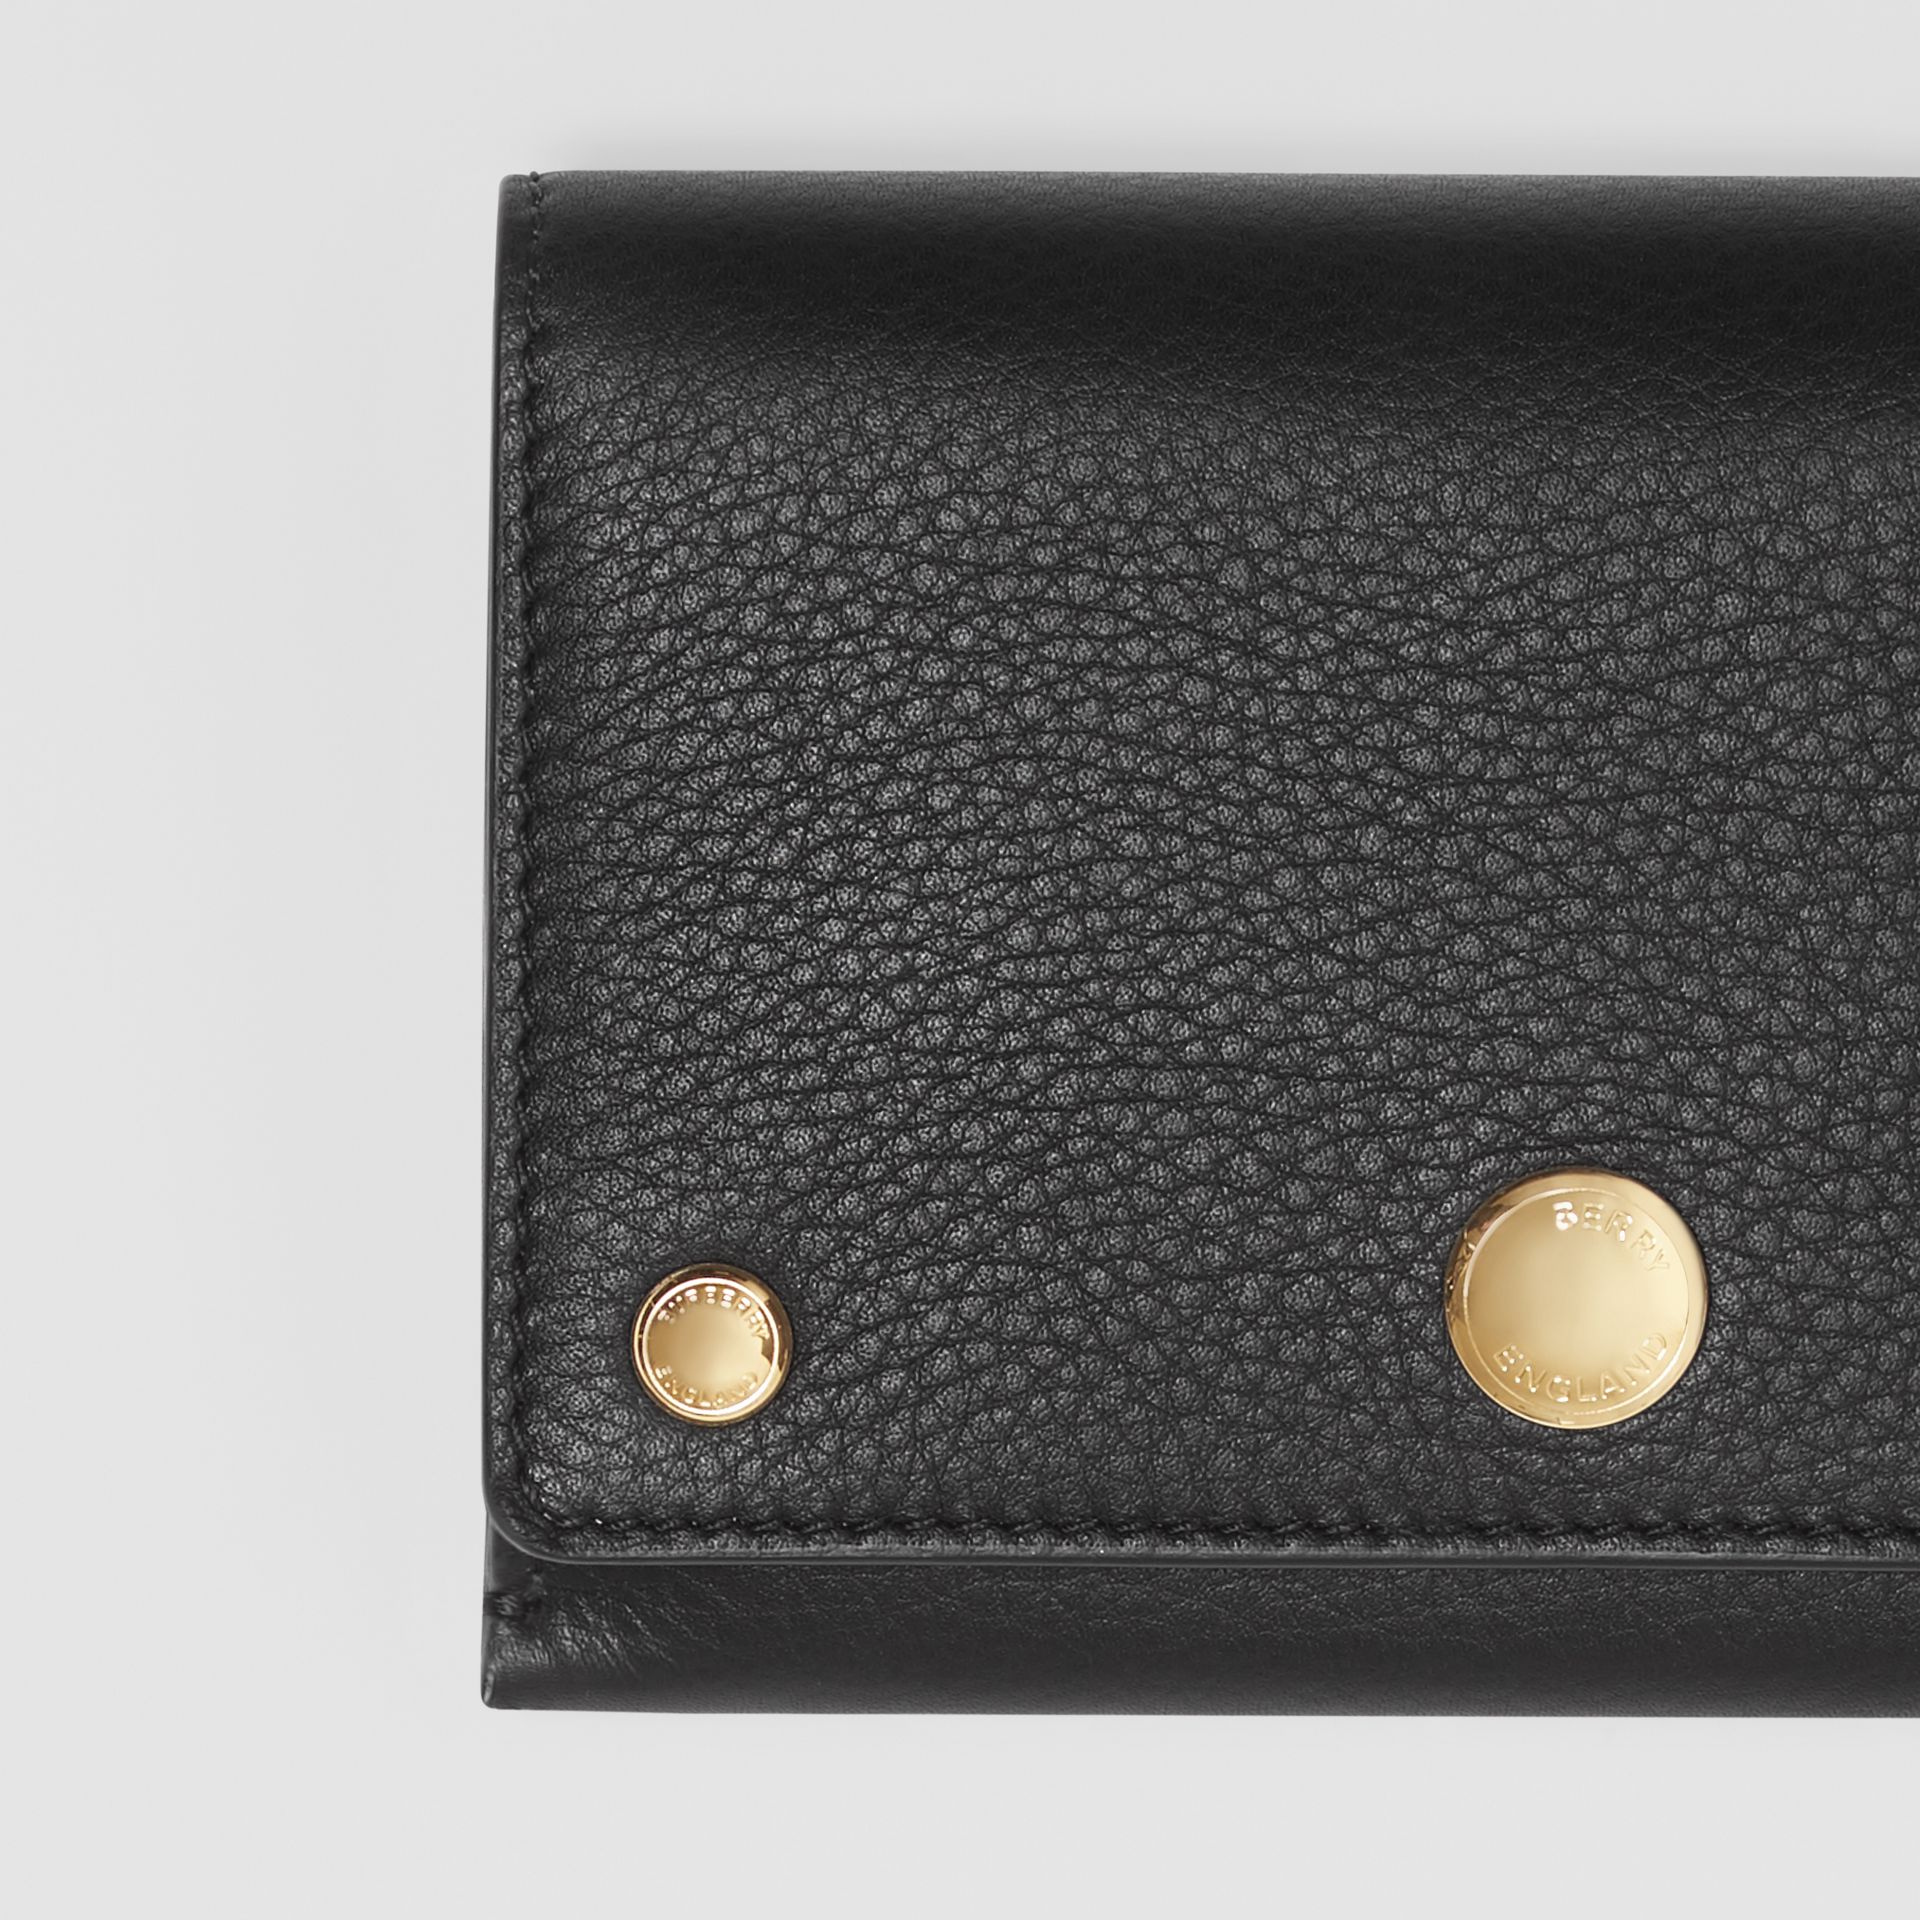 Triple Stud Leather Folding Wallet in Black - Women | Burberry Hong Kong - gallery image 1